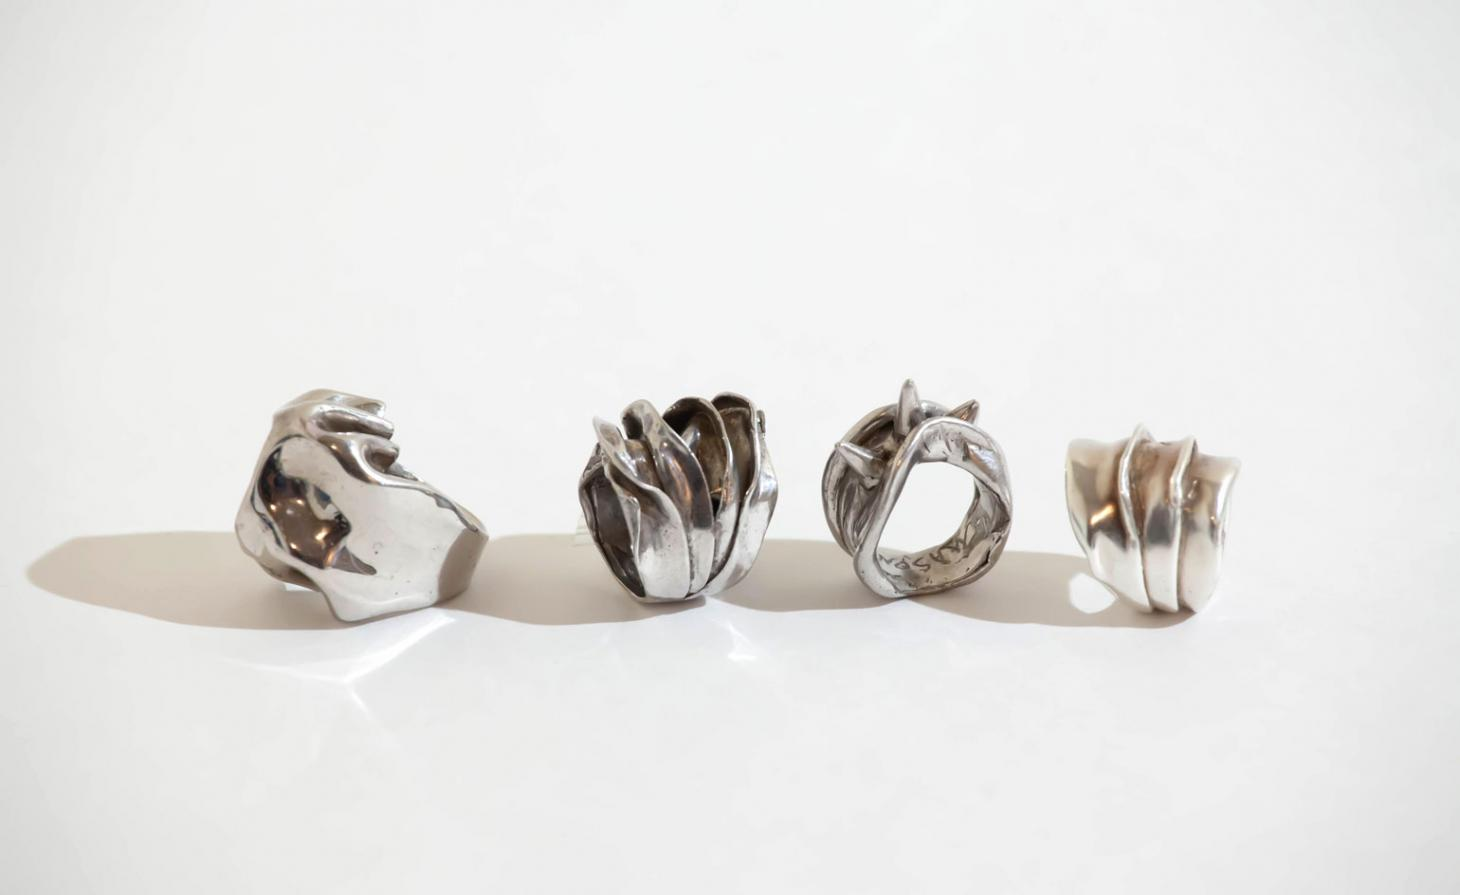 Rings by emerging jewellery designer Mason Feyz